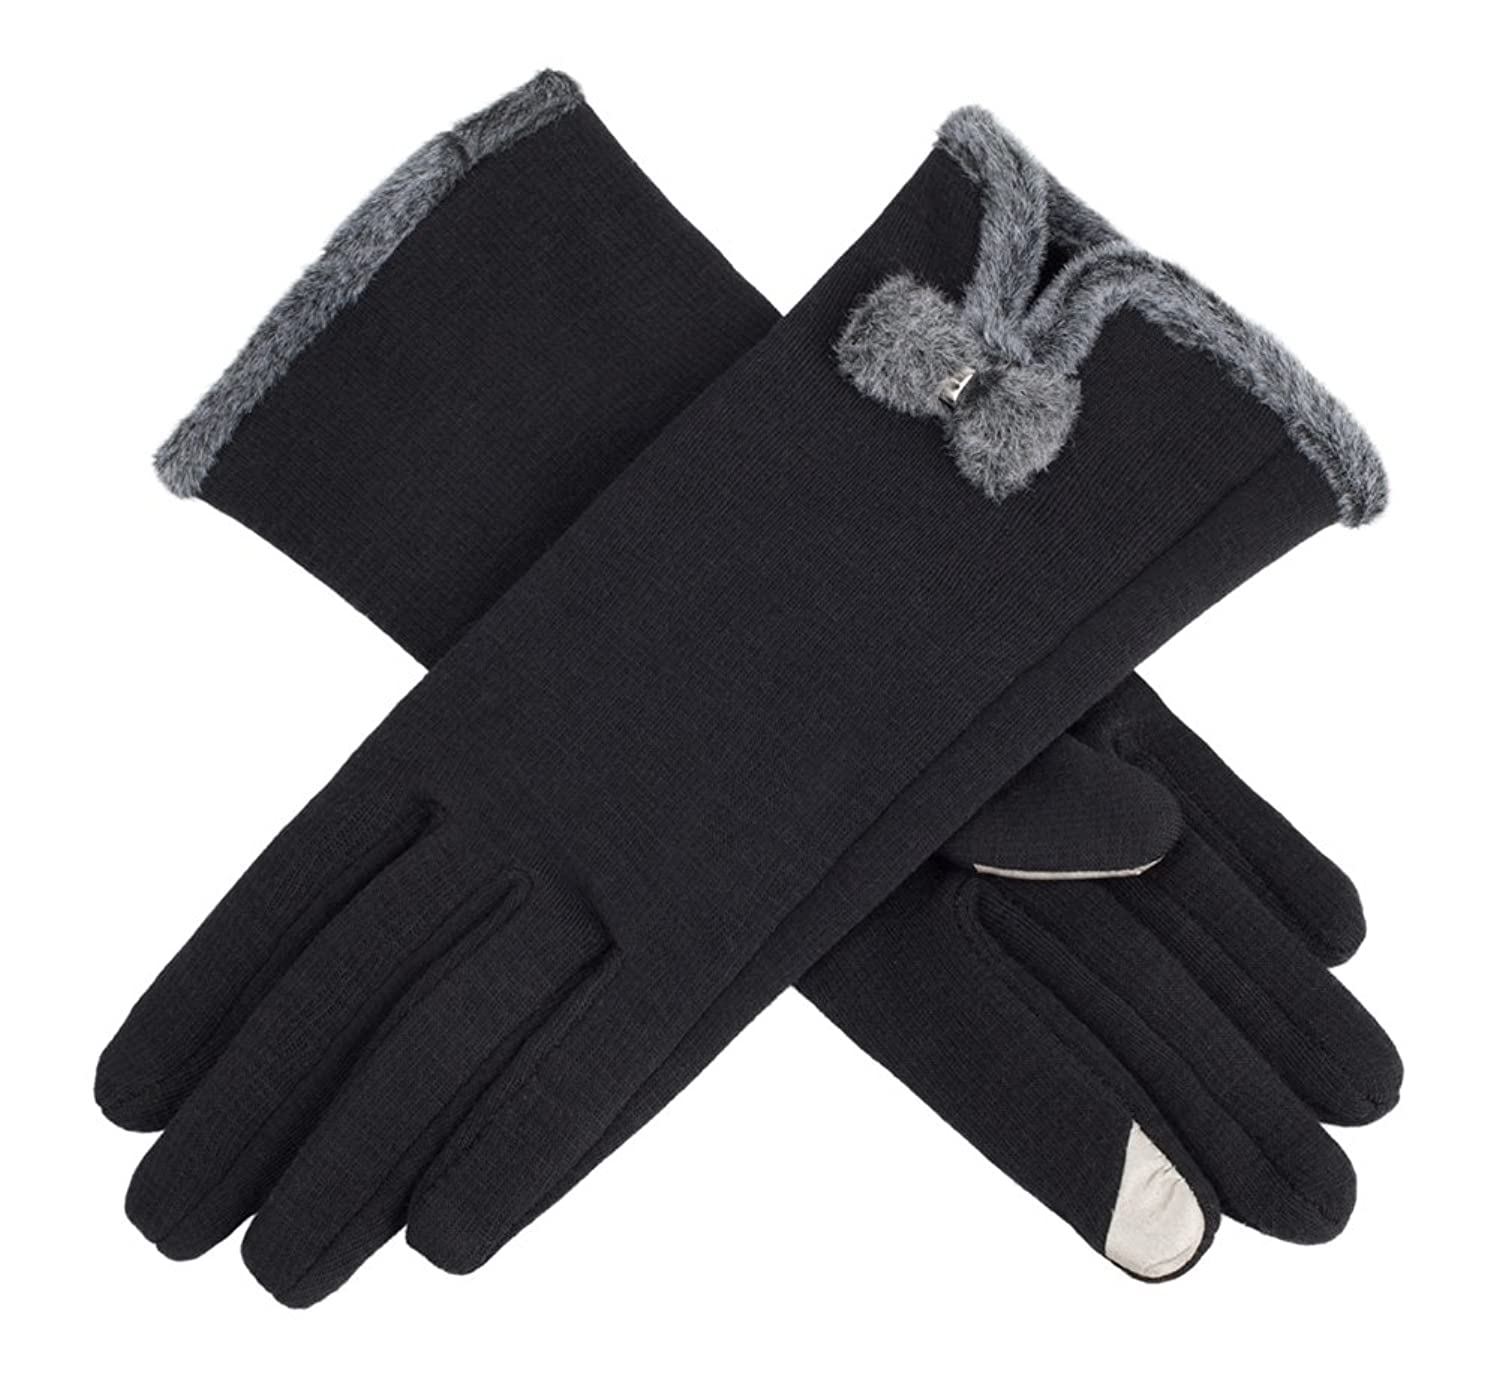 Mens gloves isotoner - Top 10 Best Women S Winter Gloves For Touchscreen Phones 2016 2017 On Flipboard